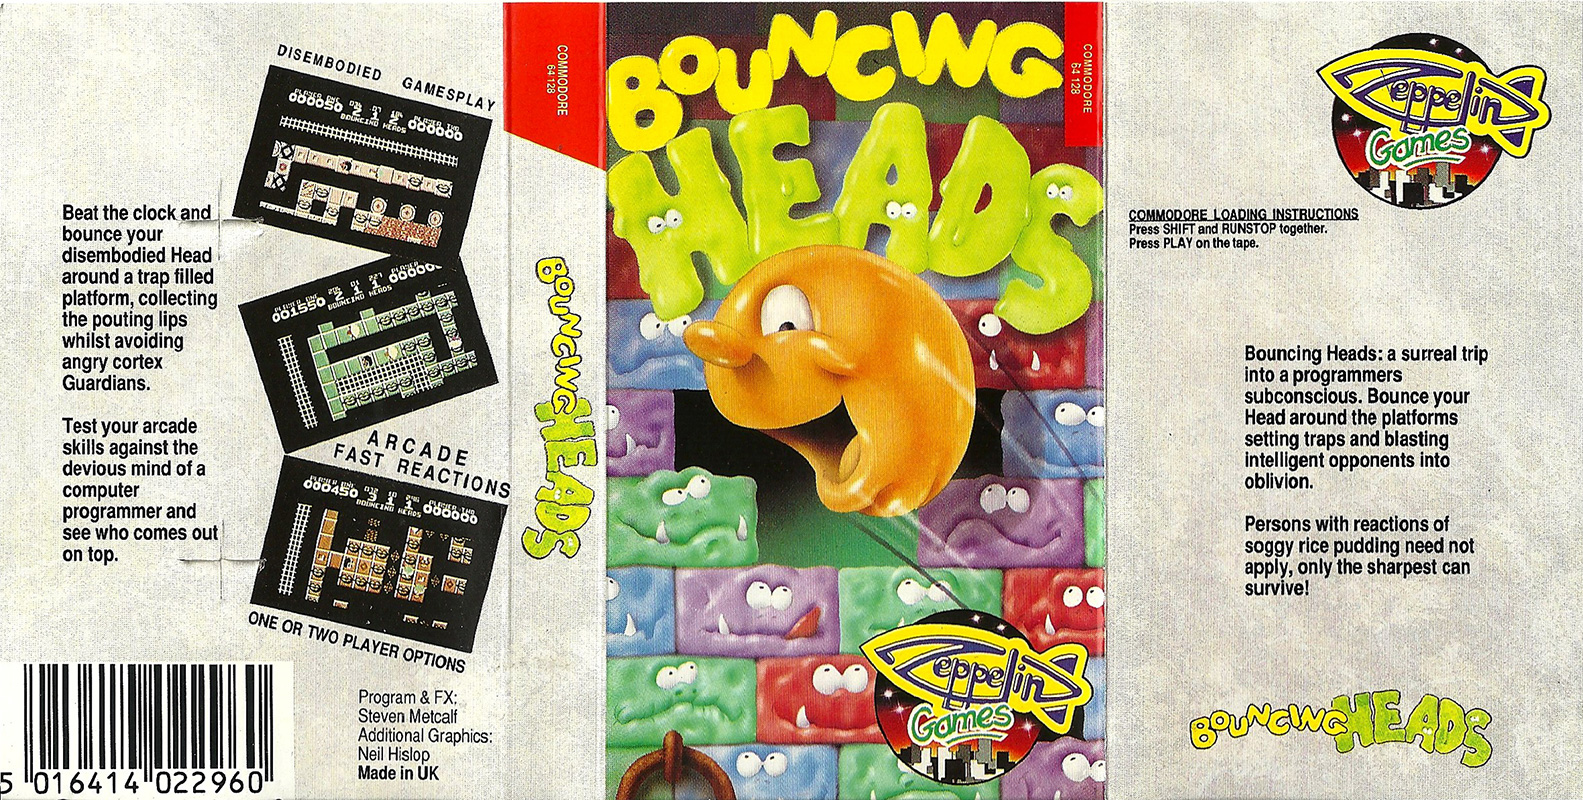 Commodore-C64-Bouncing-Heads | Retro Video Gaming